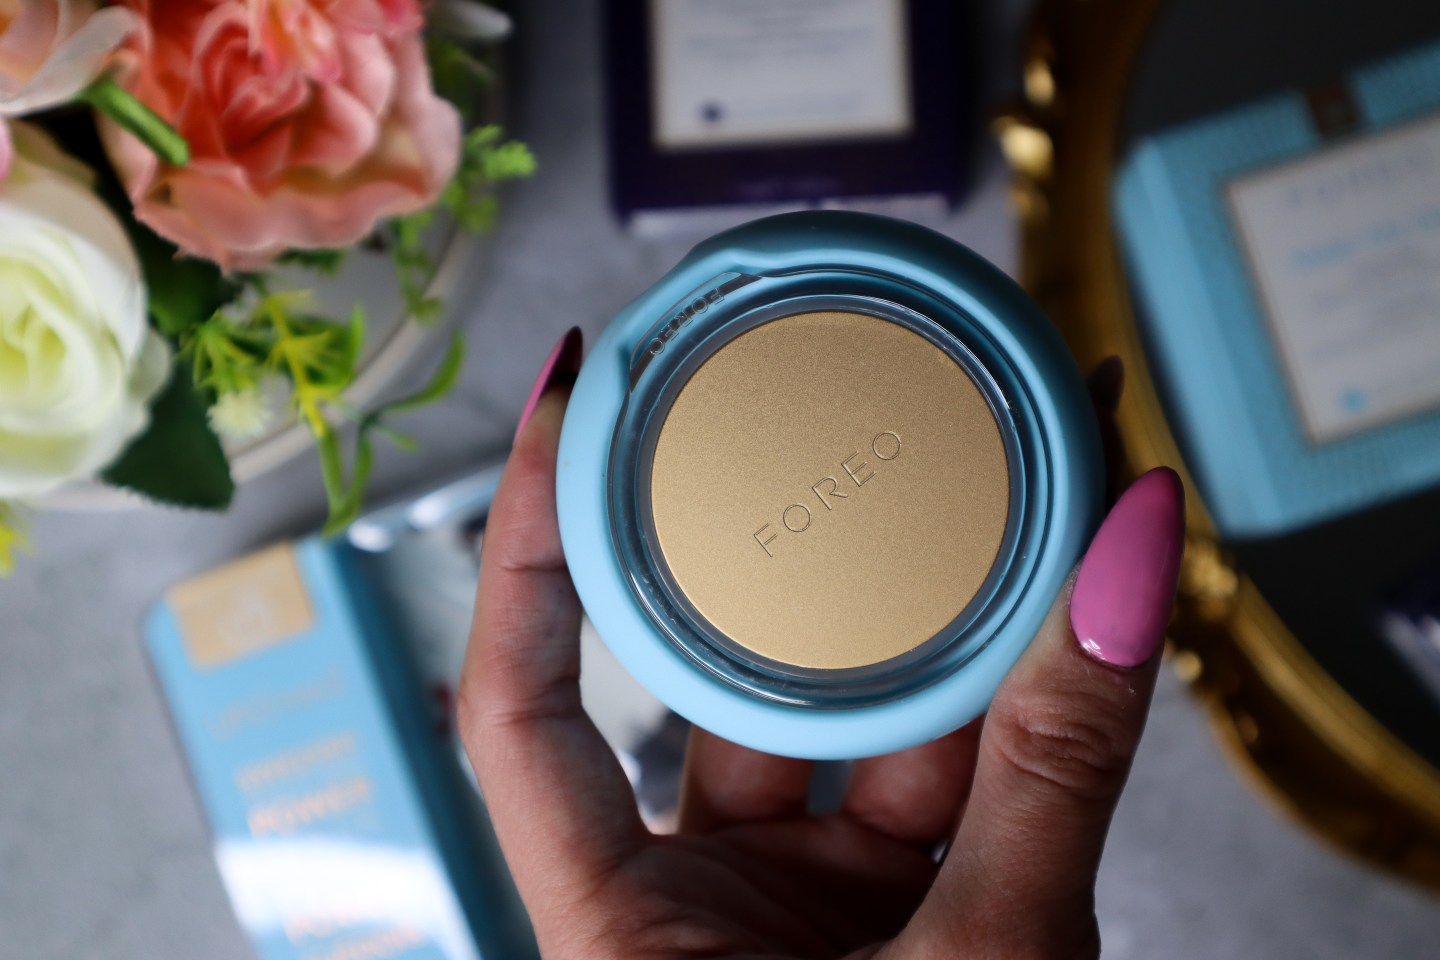 Ufo 2 mini by Foreo Sweden